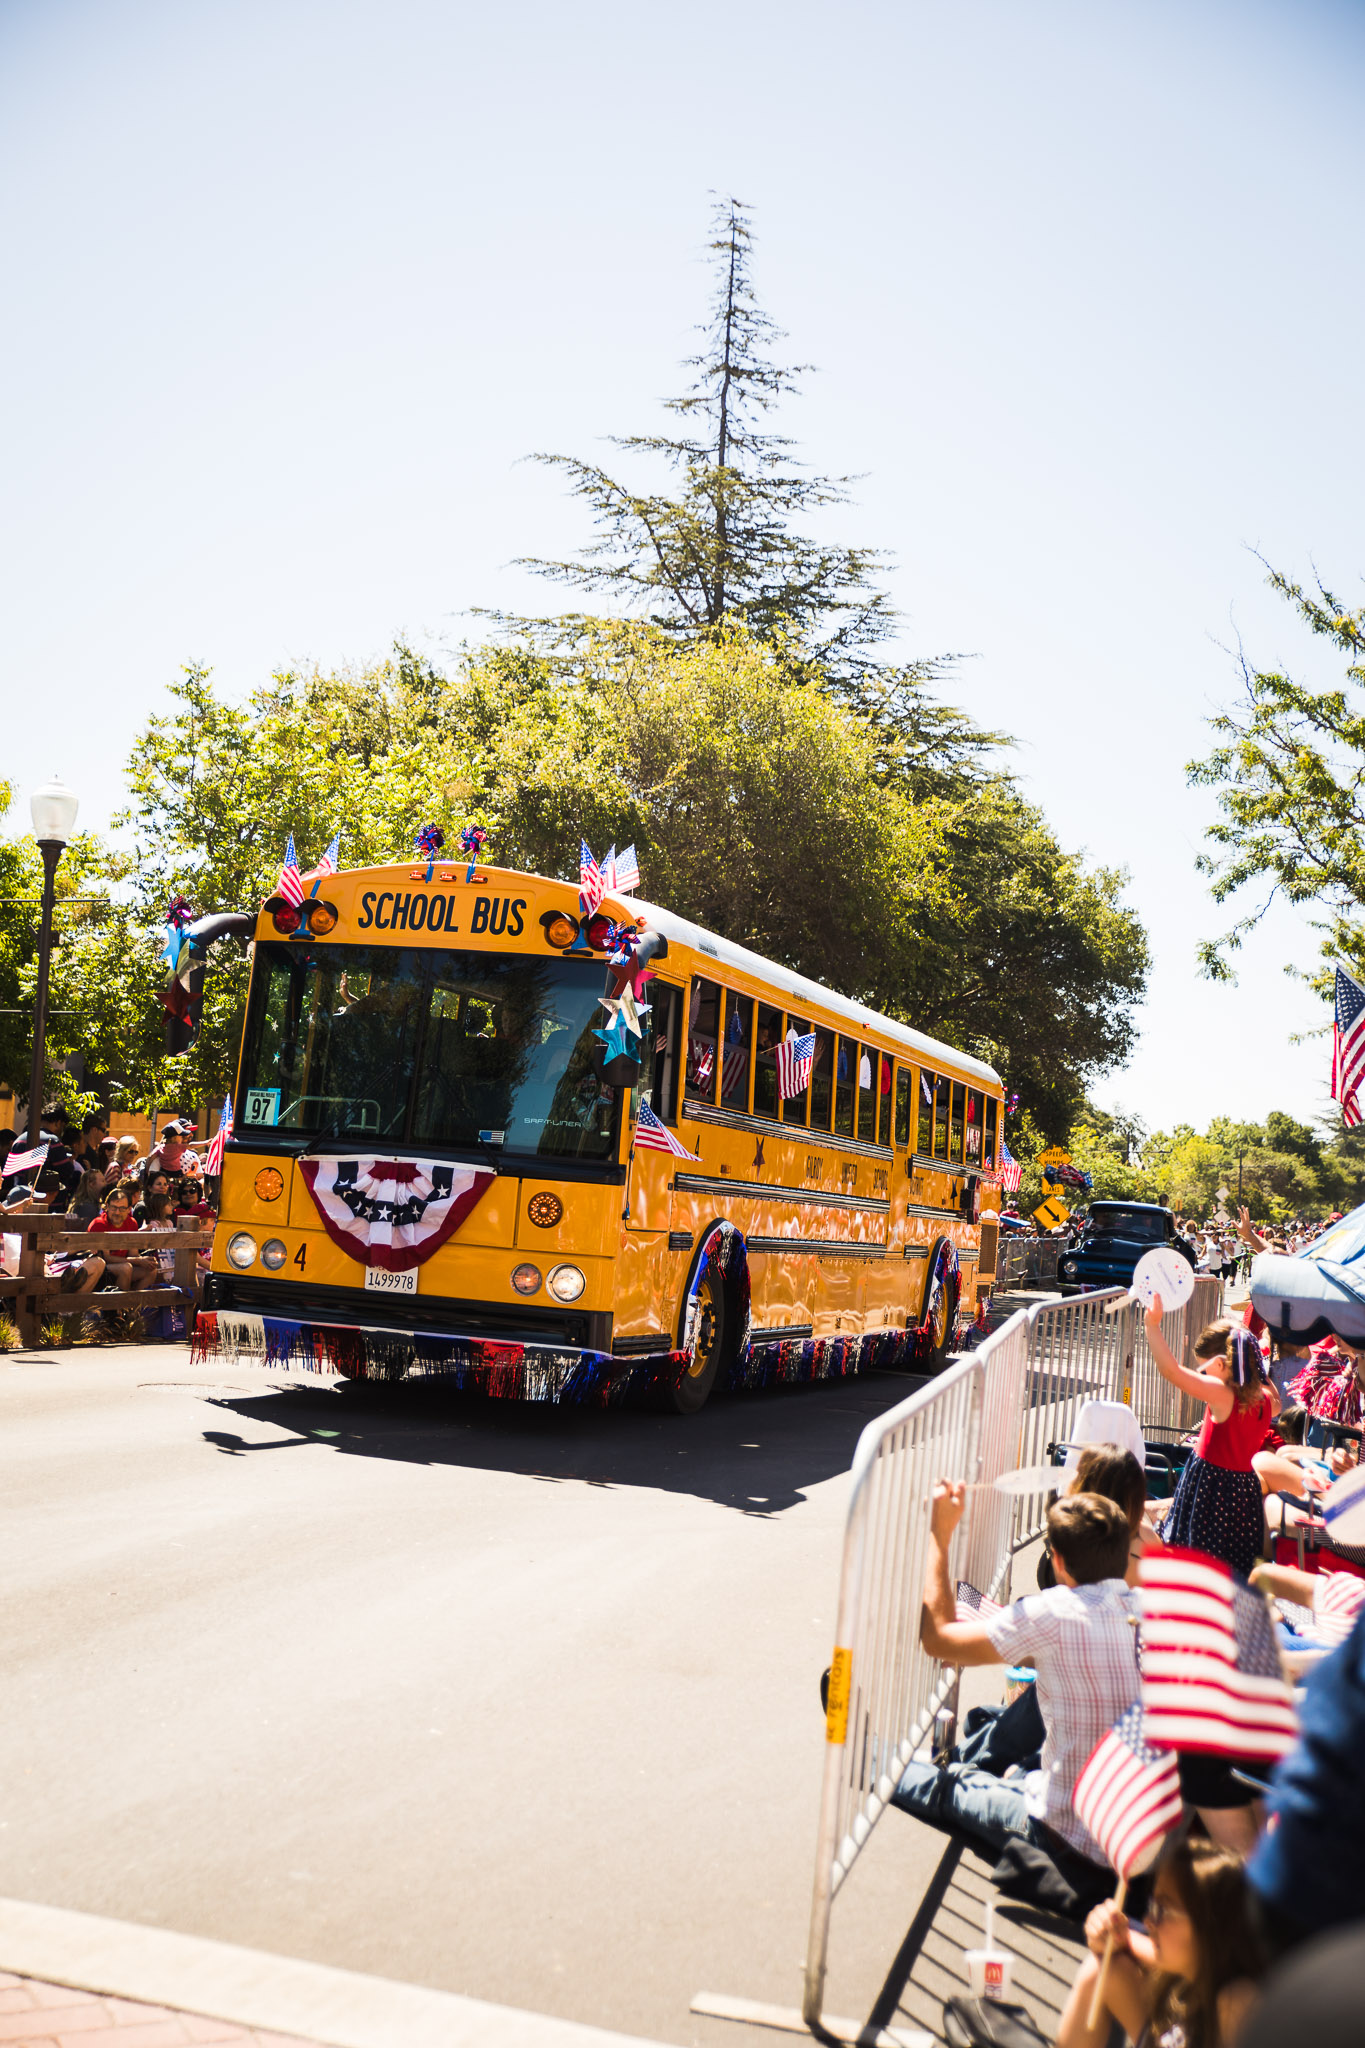 Archer_Inspired_Photography_Morgan_Hill_California_4th_of_july_parade-107.jpg